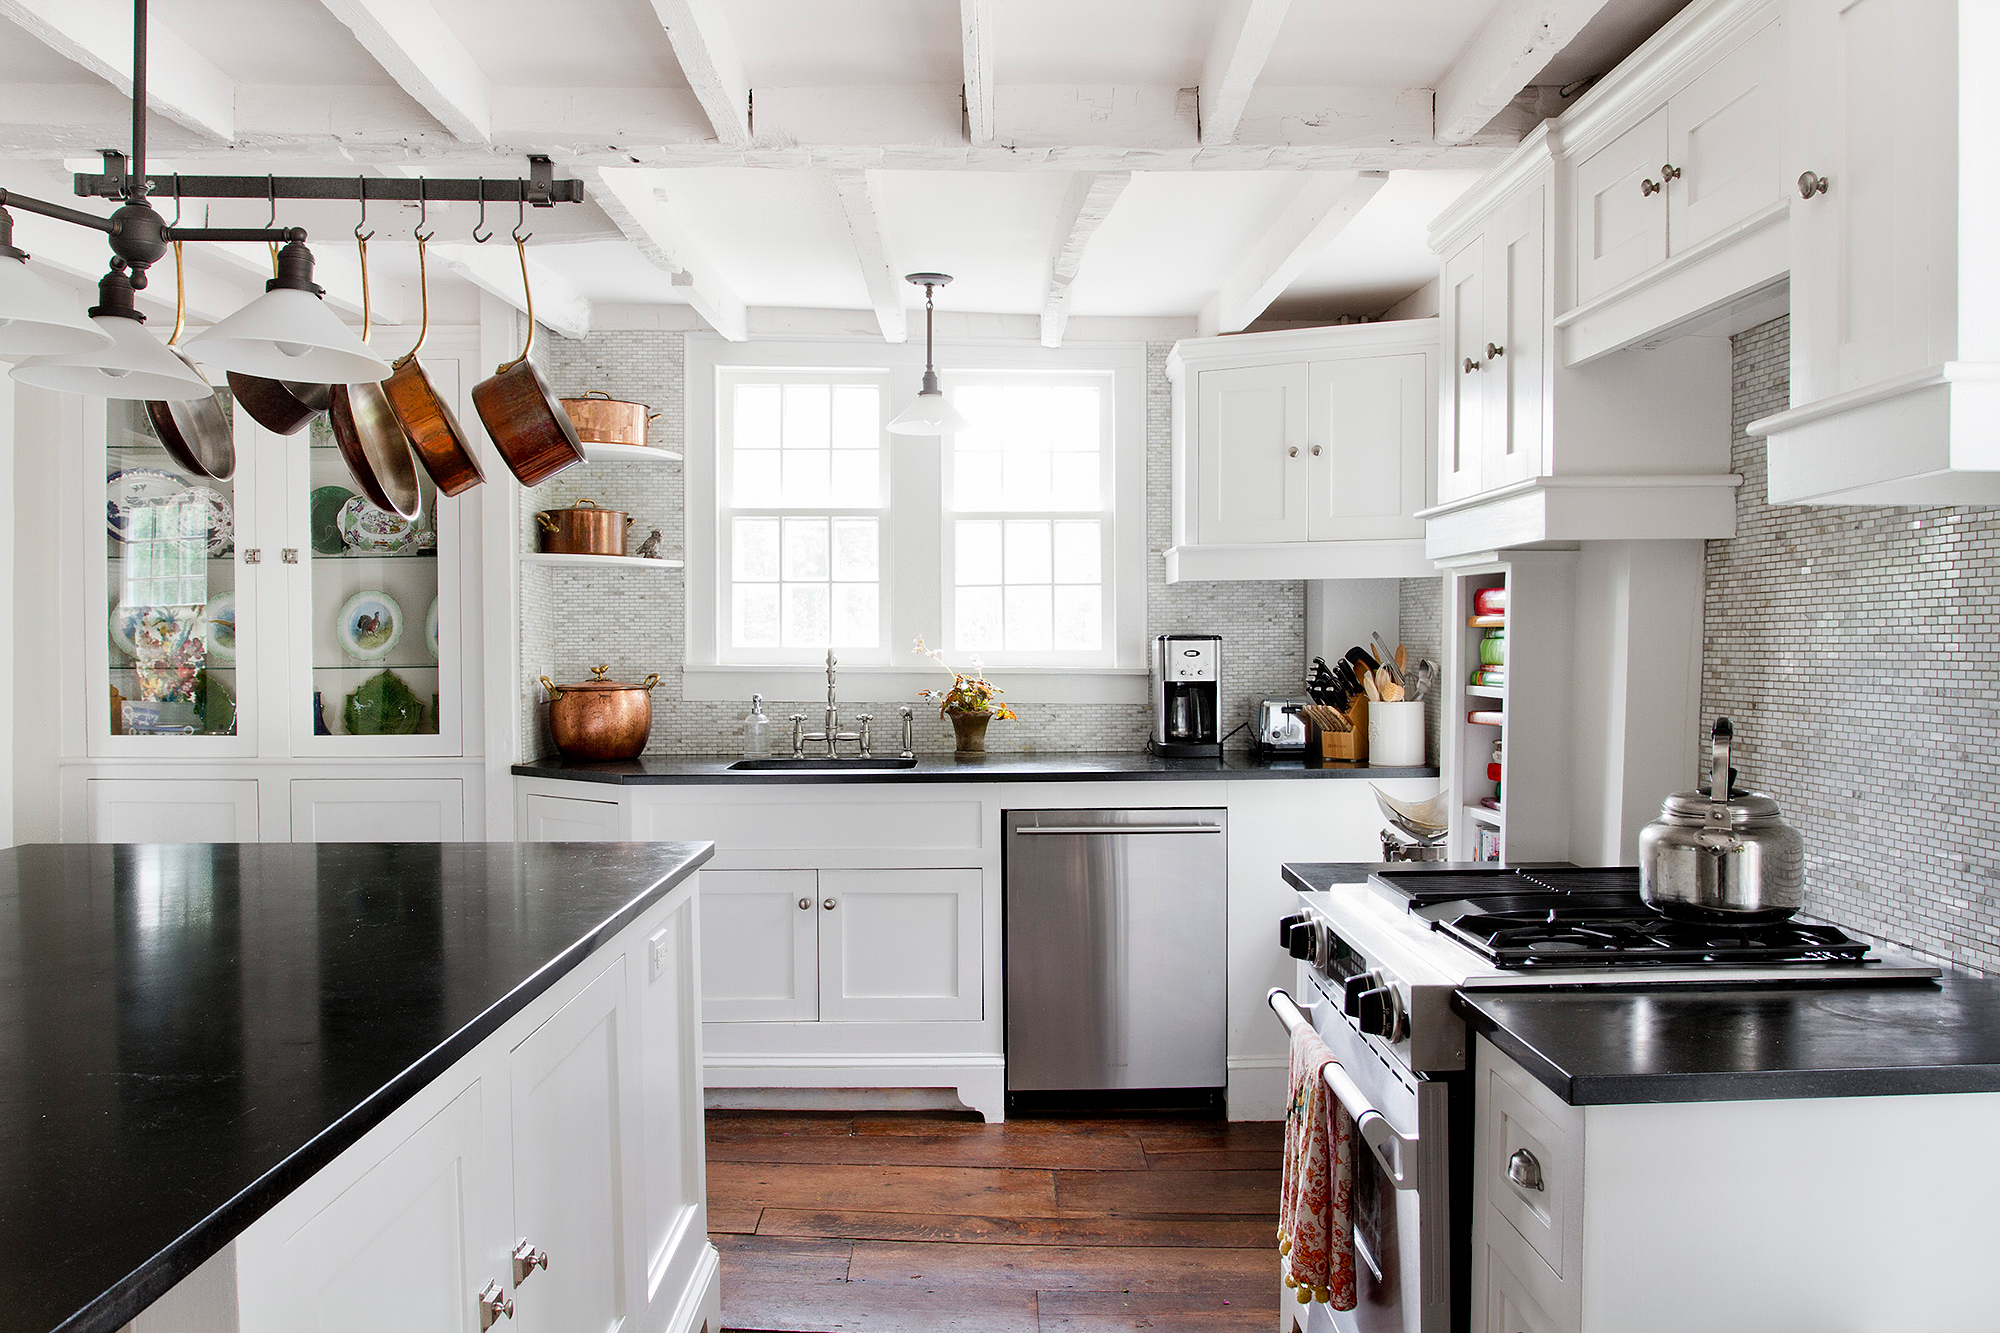 9 Kitchen Trends You'll See Everywhere in 2017 — And One That's on the Way Out